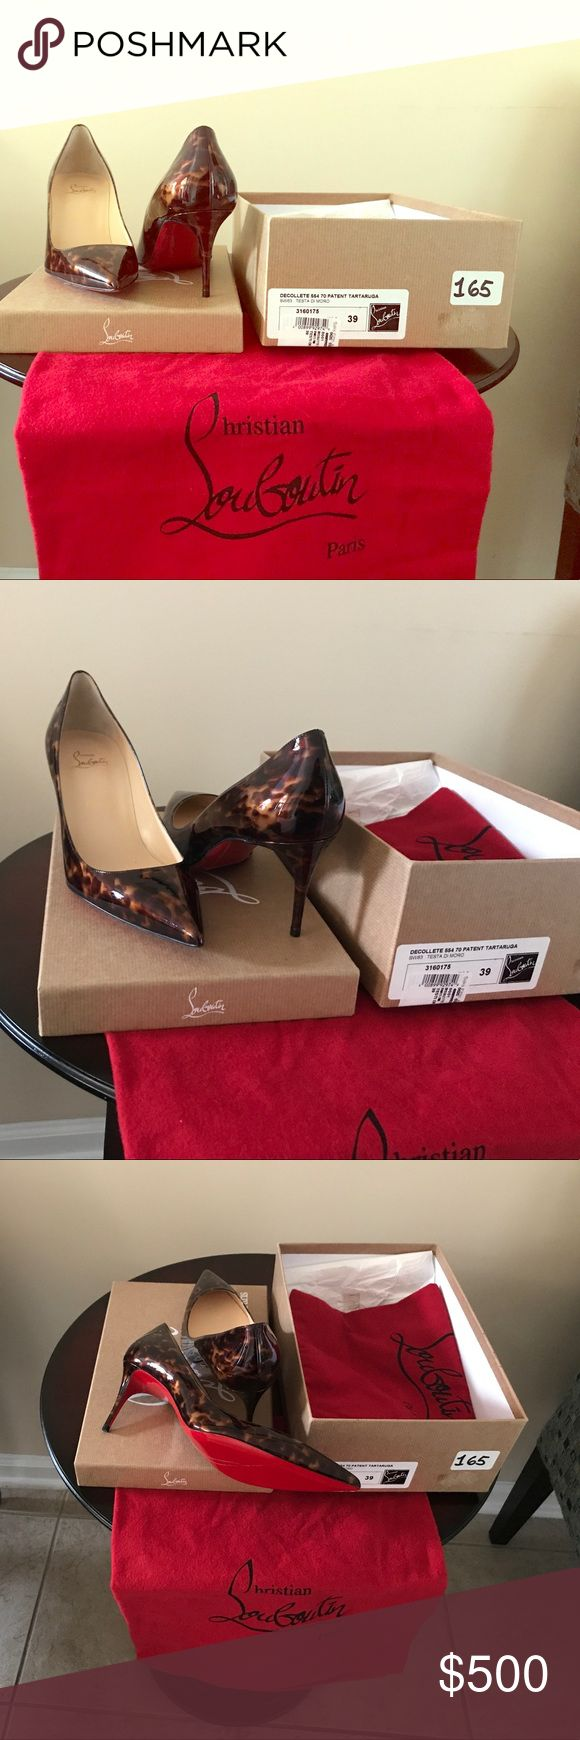 Christian Louboutin Decolette 70 Patent Tartaruga Brand New Christian Louboutin Decolette 554 70 Patent Tartaruga  Size 39 Sole protector on the bottoms Christian Louboutin Shoes Heels